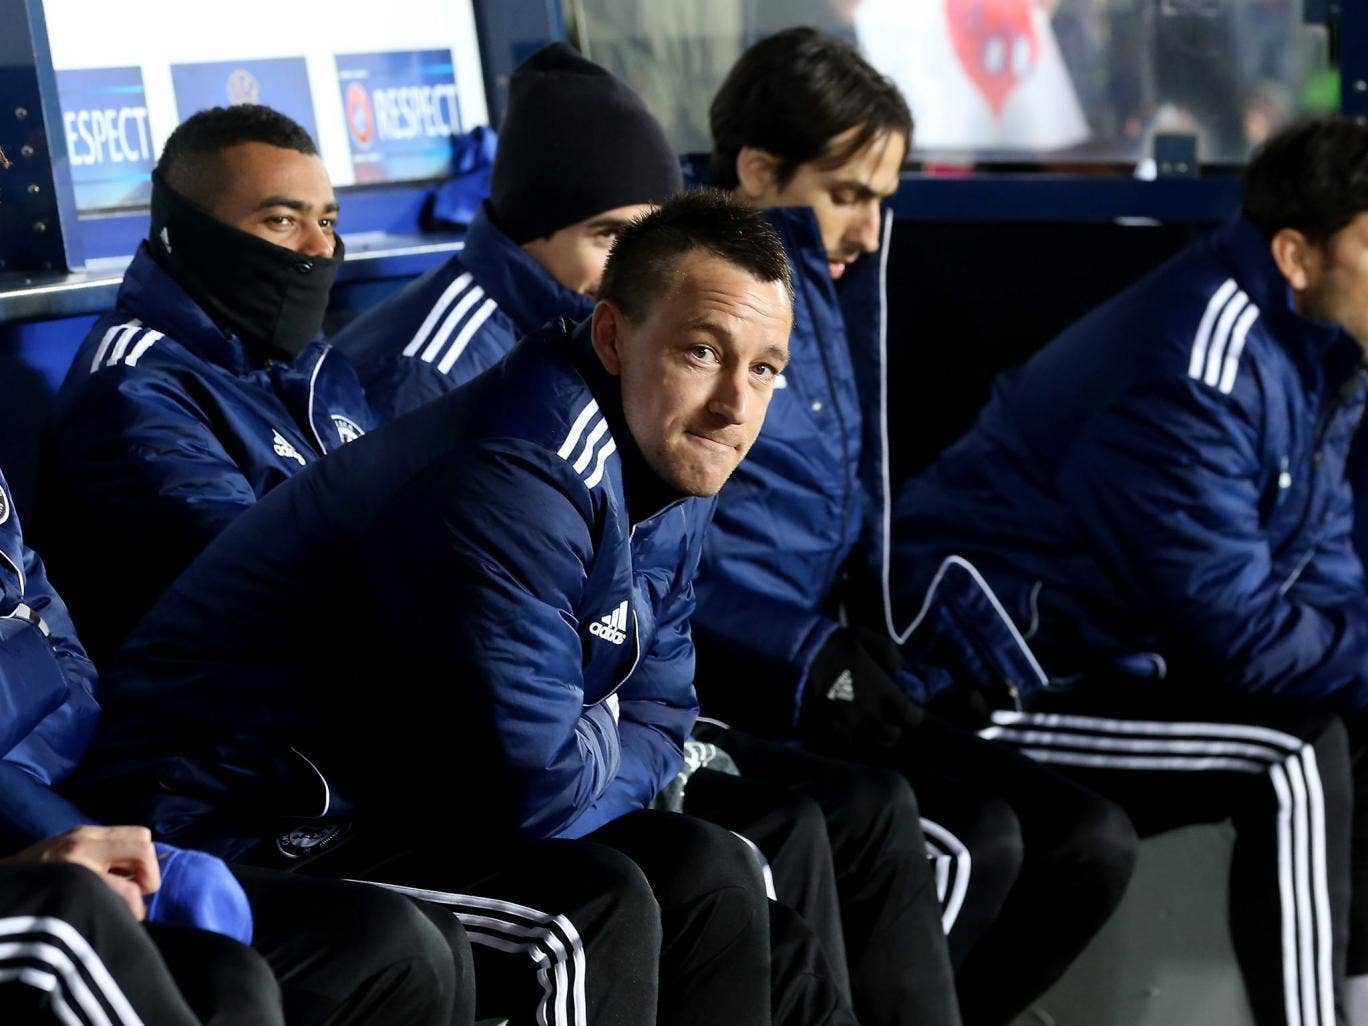 Chelsea captain John Terry on the bench